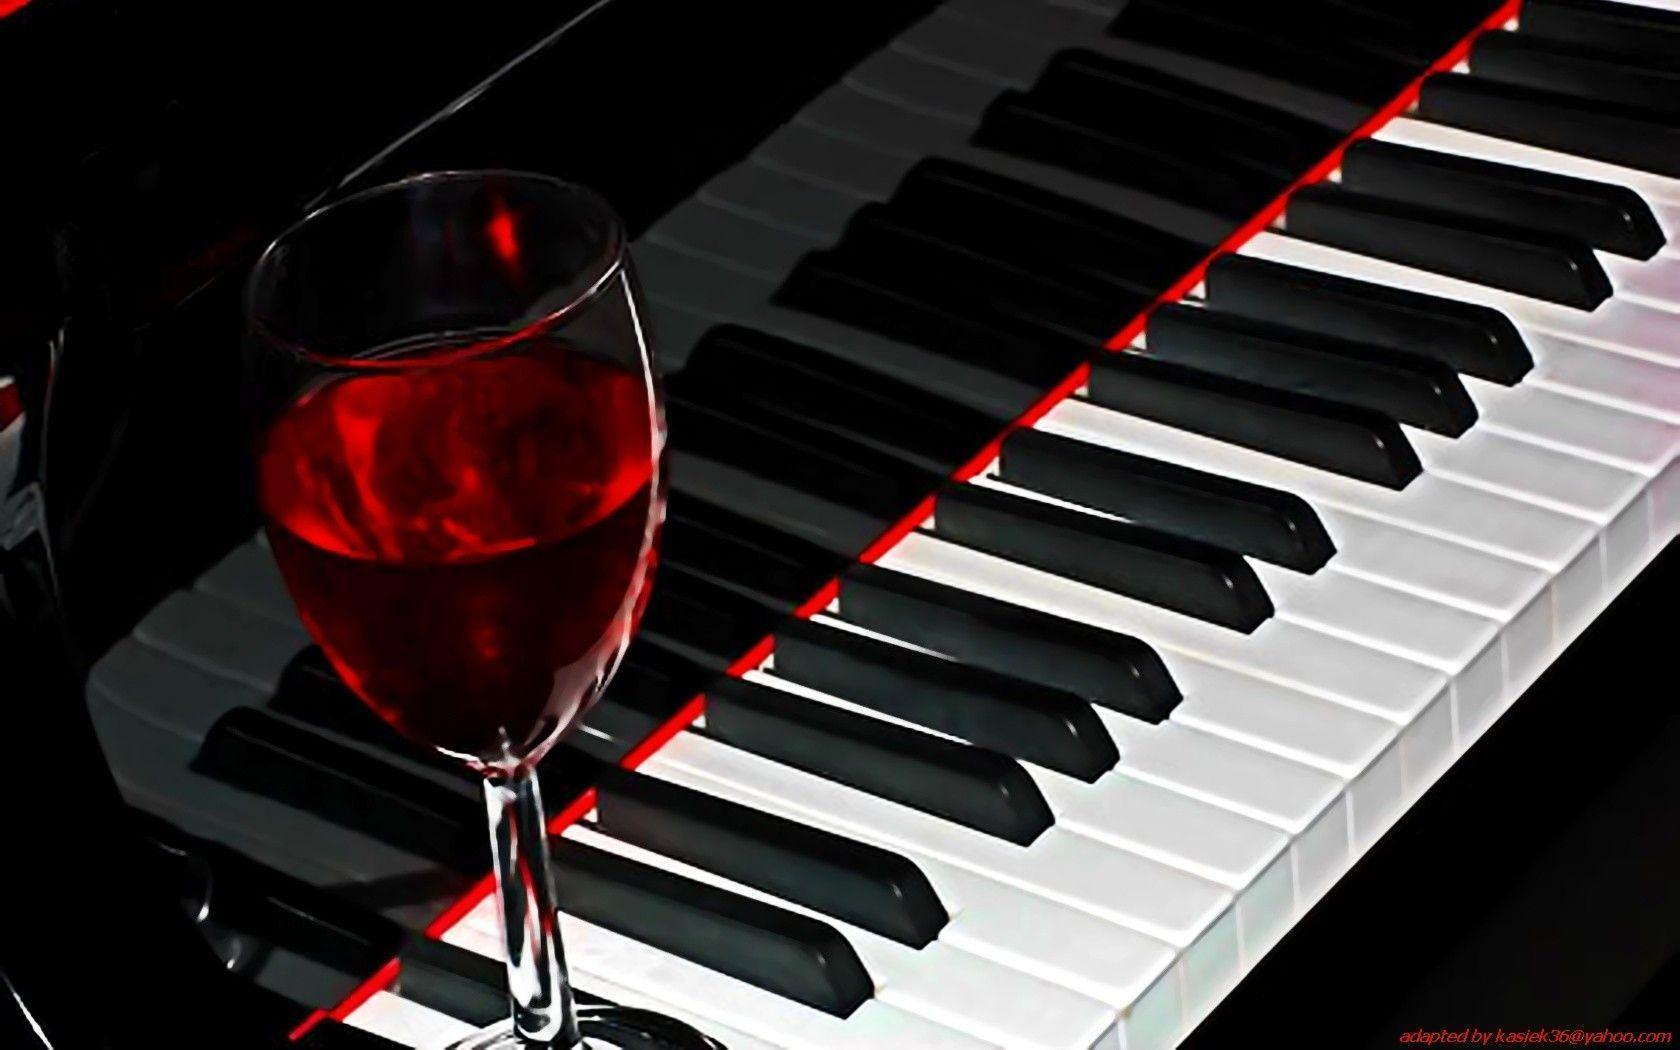 Wallpaper Piano Musical Image Wallpapers Hd Spot Pictures ...